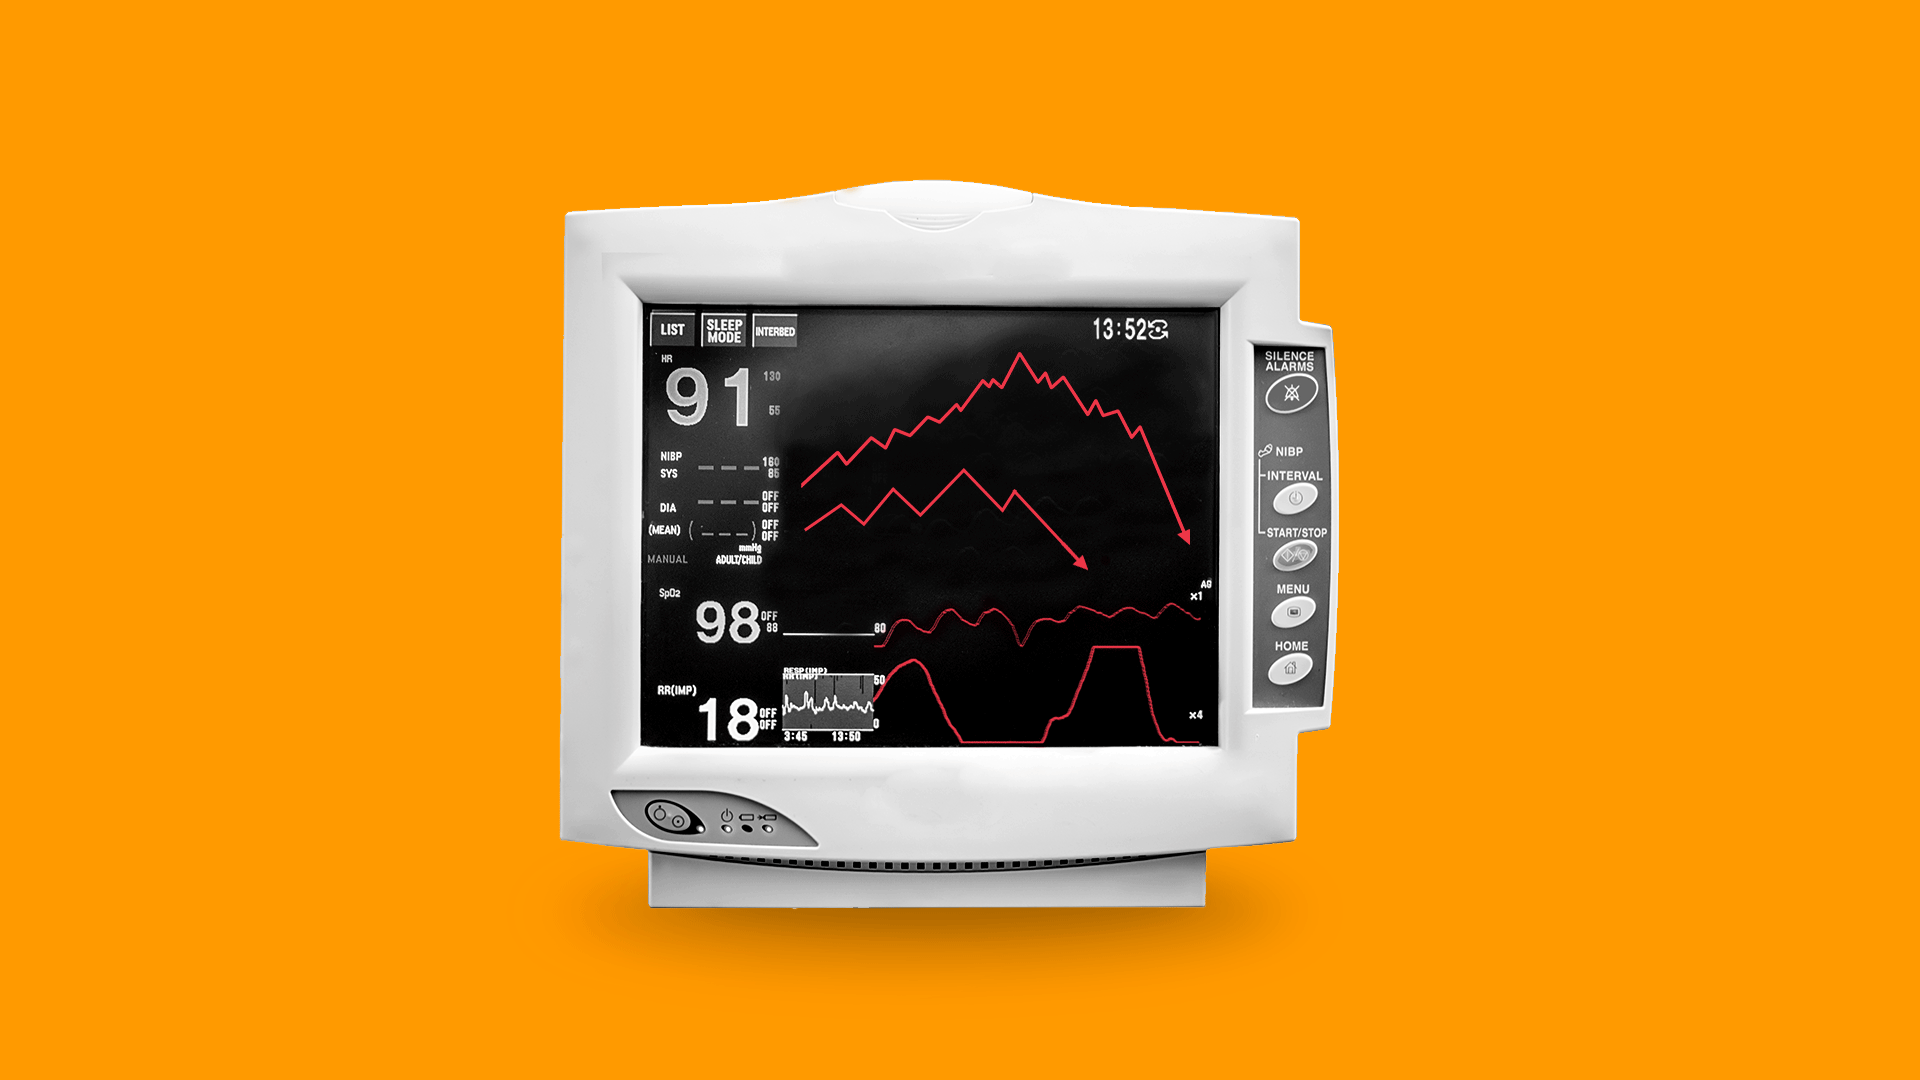 Illustration of an EKG machine with downward pointing market trend lines in place of heartbeat information.